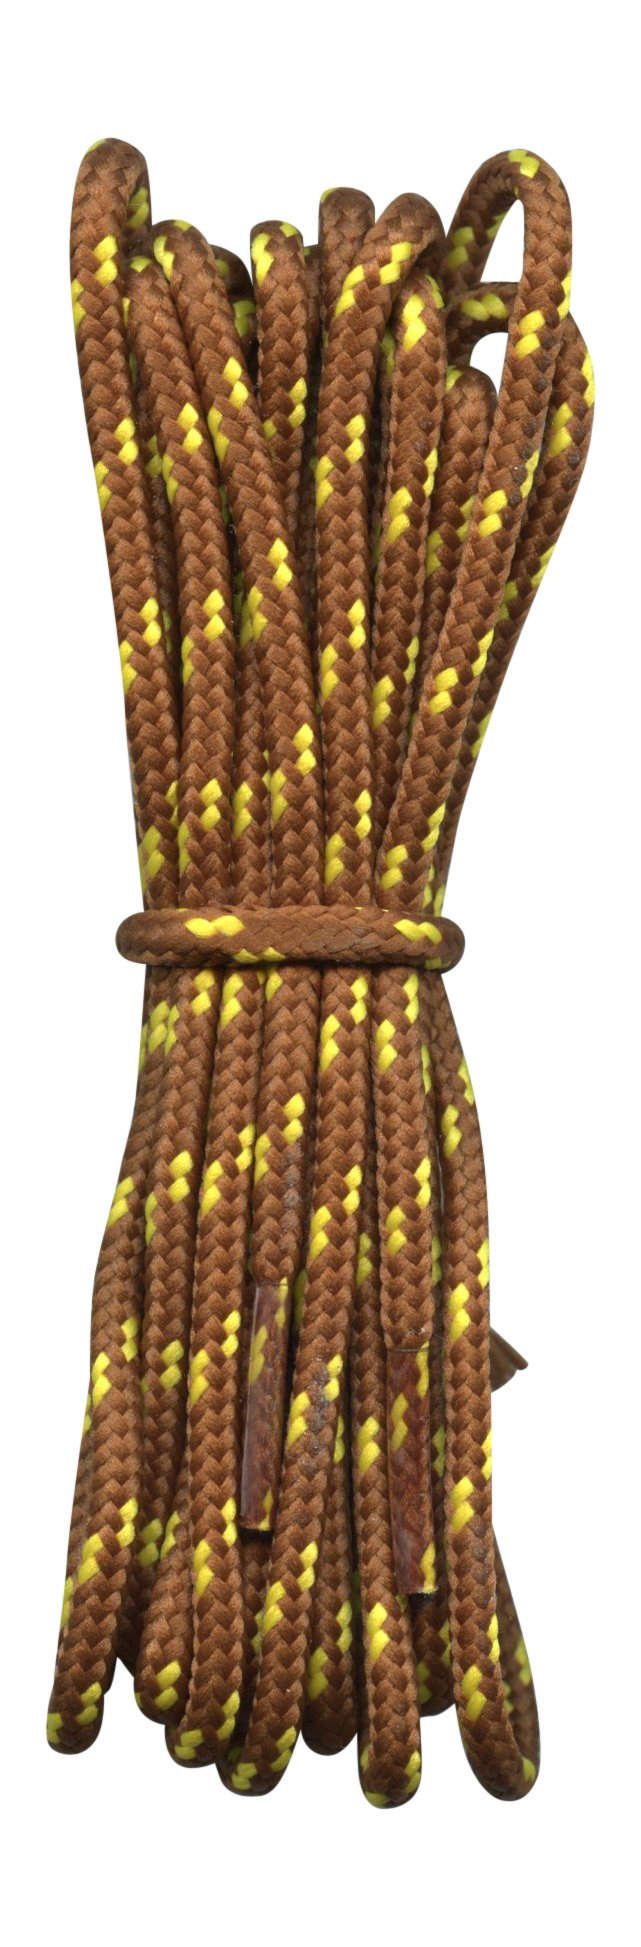 Rugged Round Boot Laces for Hiking, Walking shoes and Work Boots - Nutmeg Brown with Yellow flecks -94''